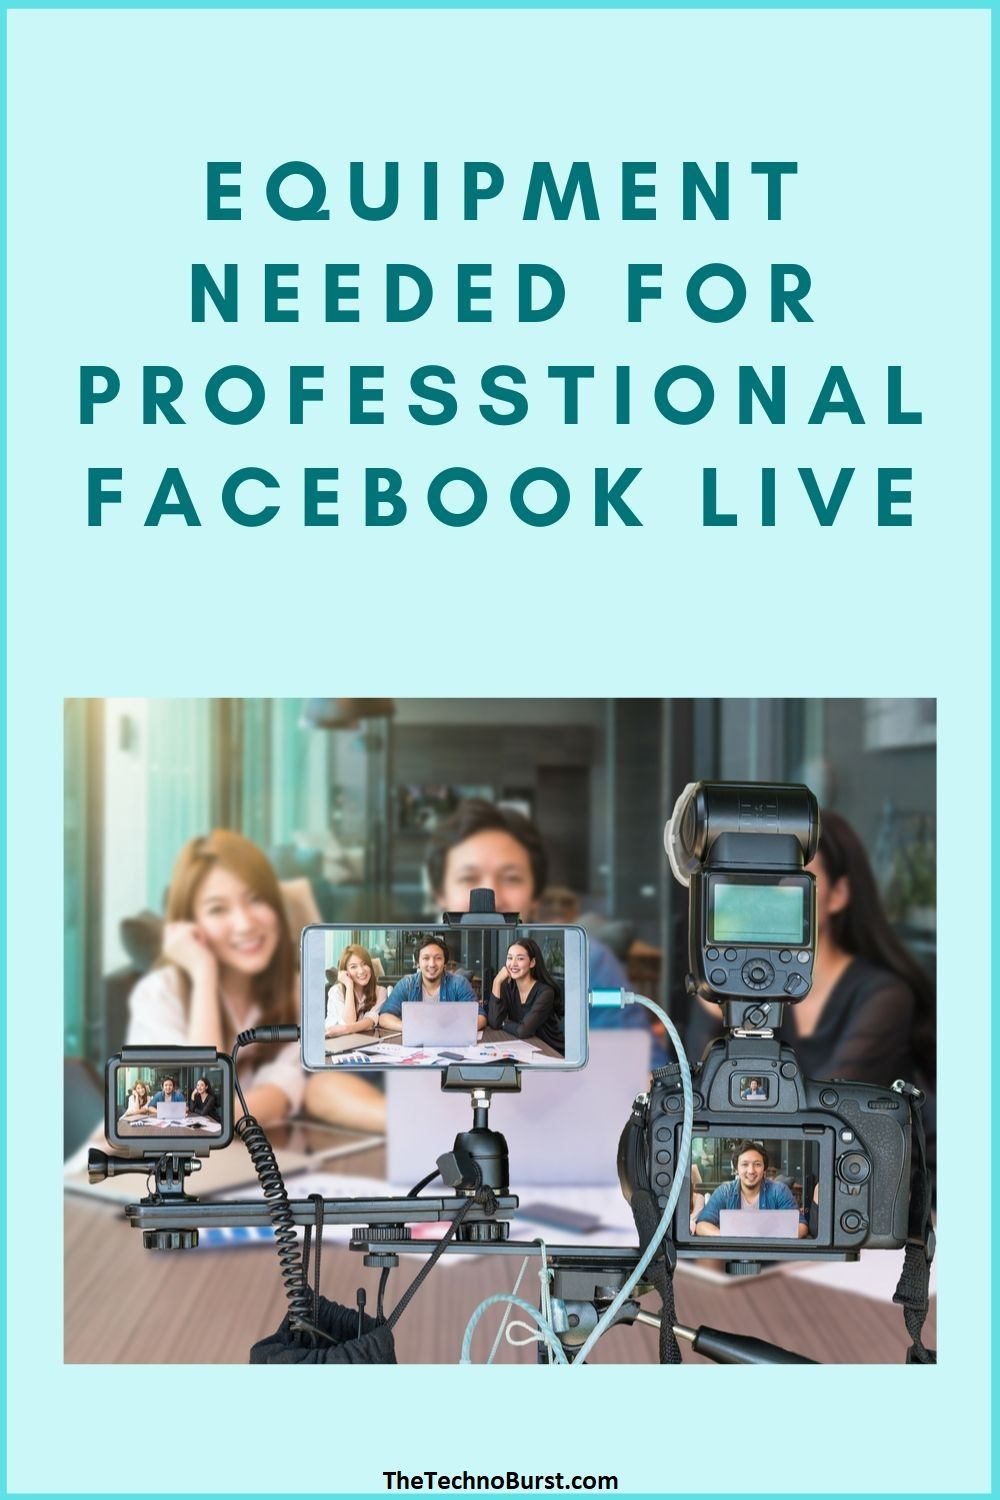 Equipment Needed For Professional Facebook Live in 2020